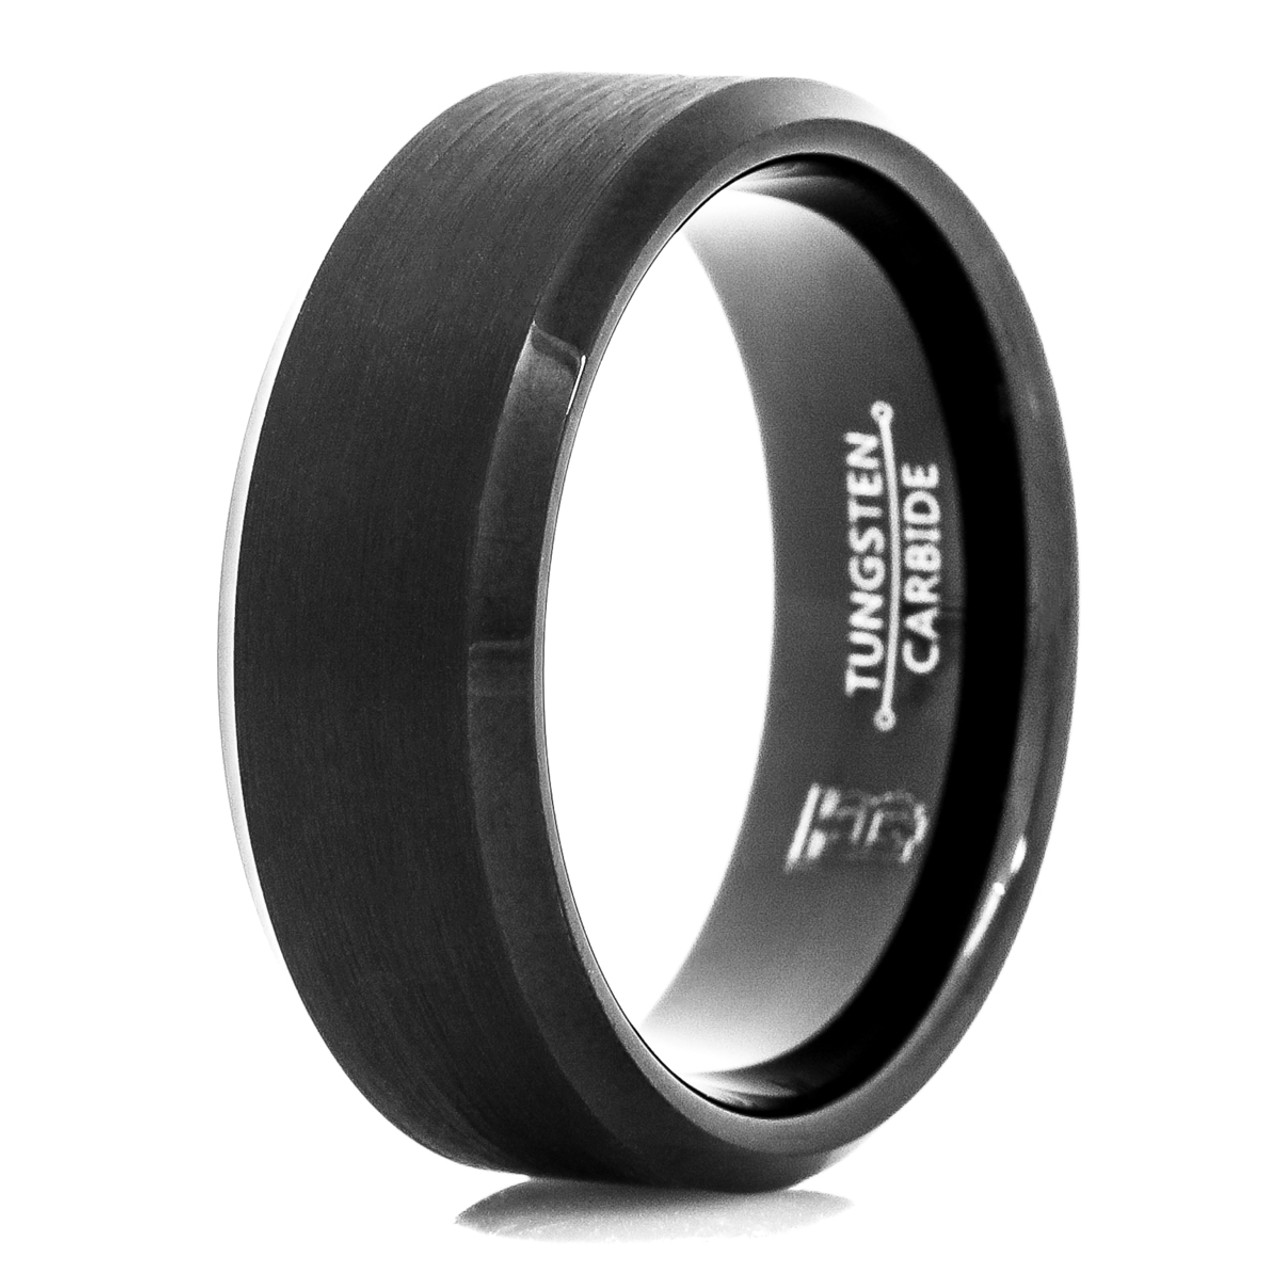 Tungston Carbide Wedding Rings.Men S Black Tungsten Carbide Wedding Band With Beveled Edge